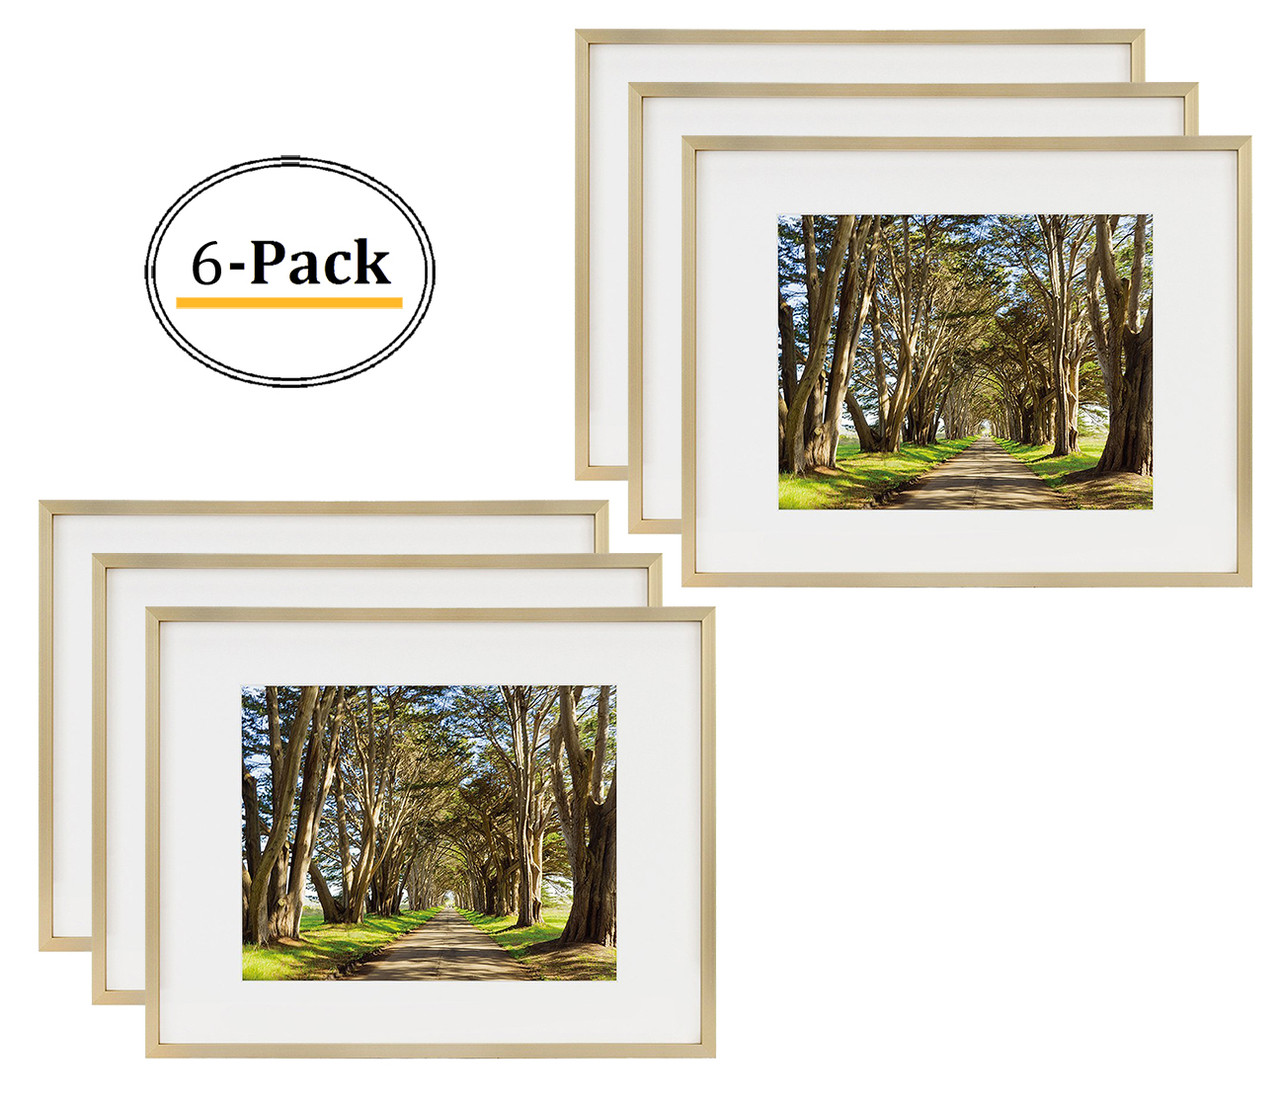 11x14 Picture Frame Gold Aluminum Shiny Brushed Fit Photo 8x10